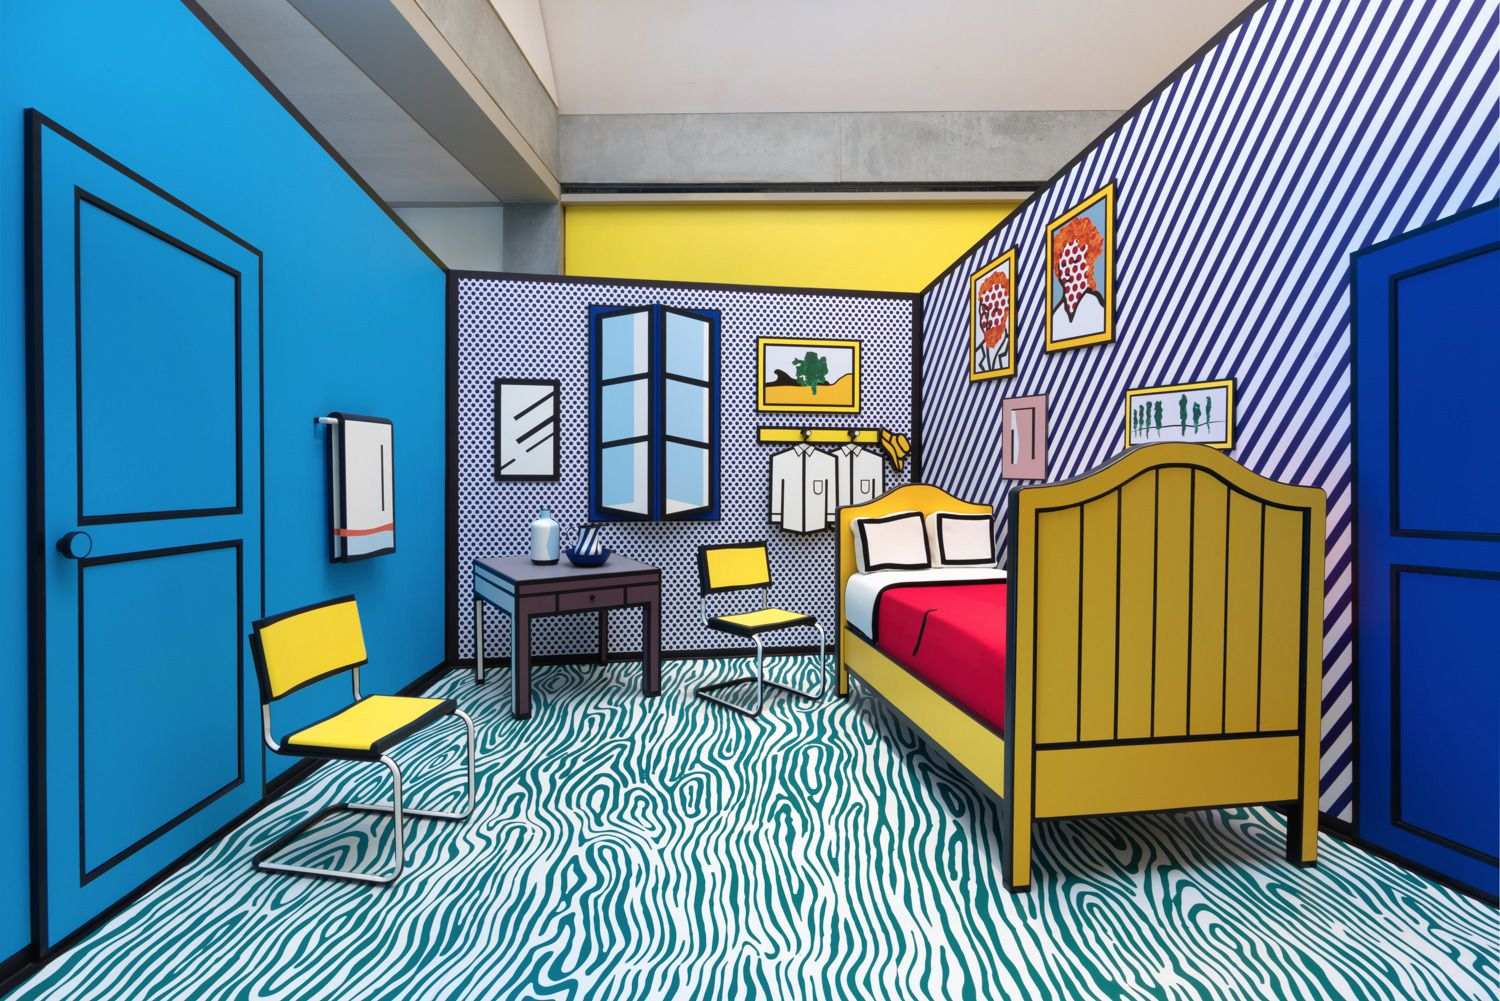 Roy Lichtenstein's re-imagination of Vincent van Gogh's Bedroom at Arles,